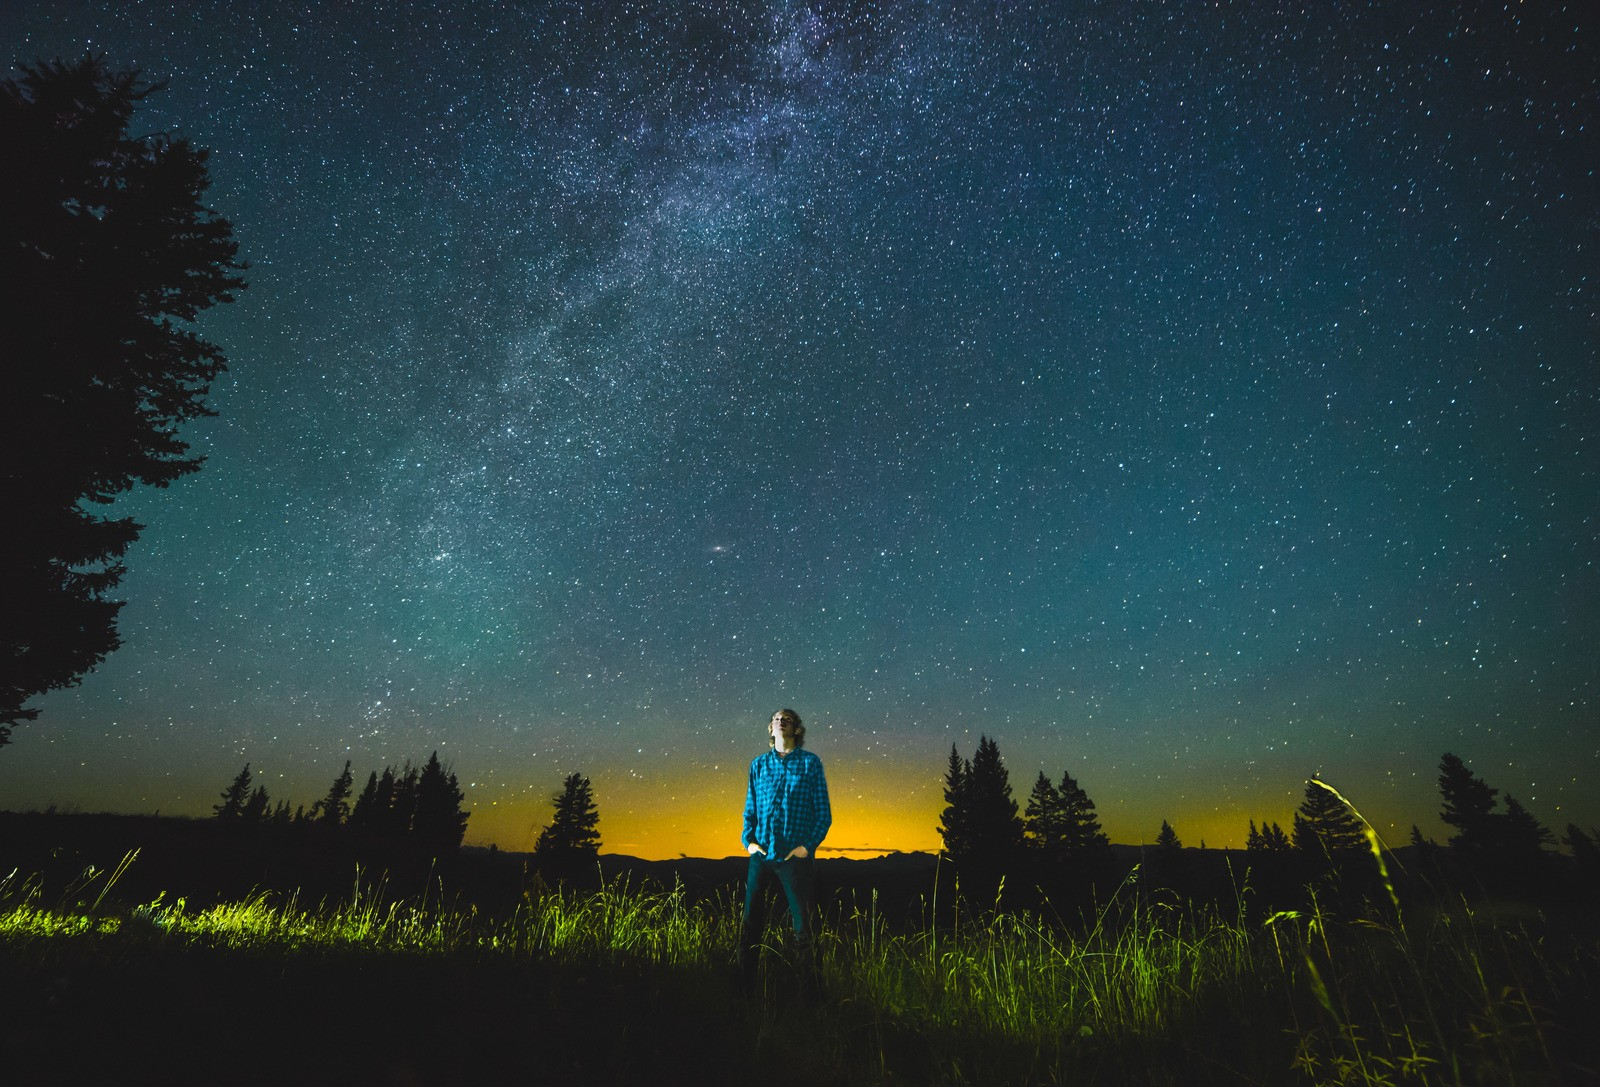 Man Standing on Lawn at Nighttime by Hunter-Bryant